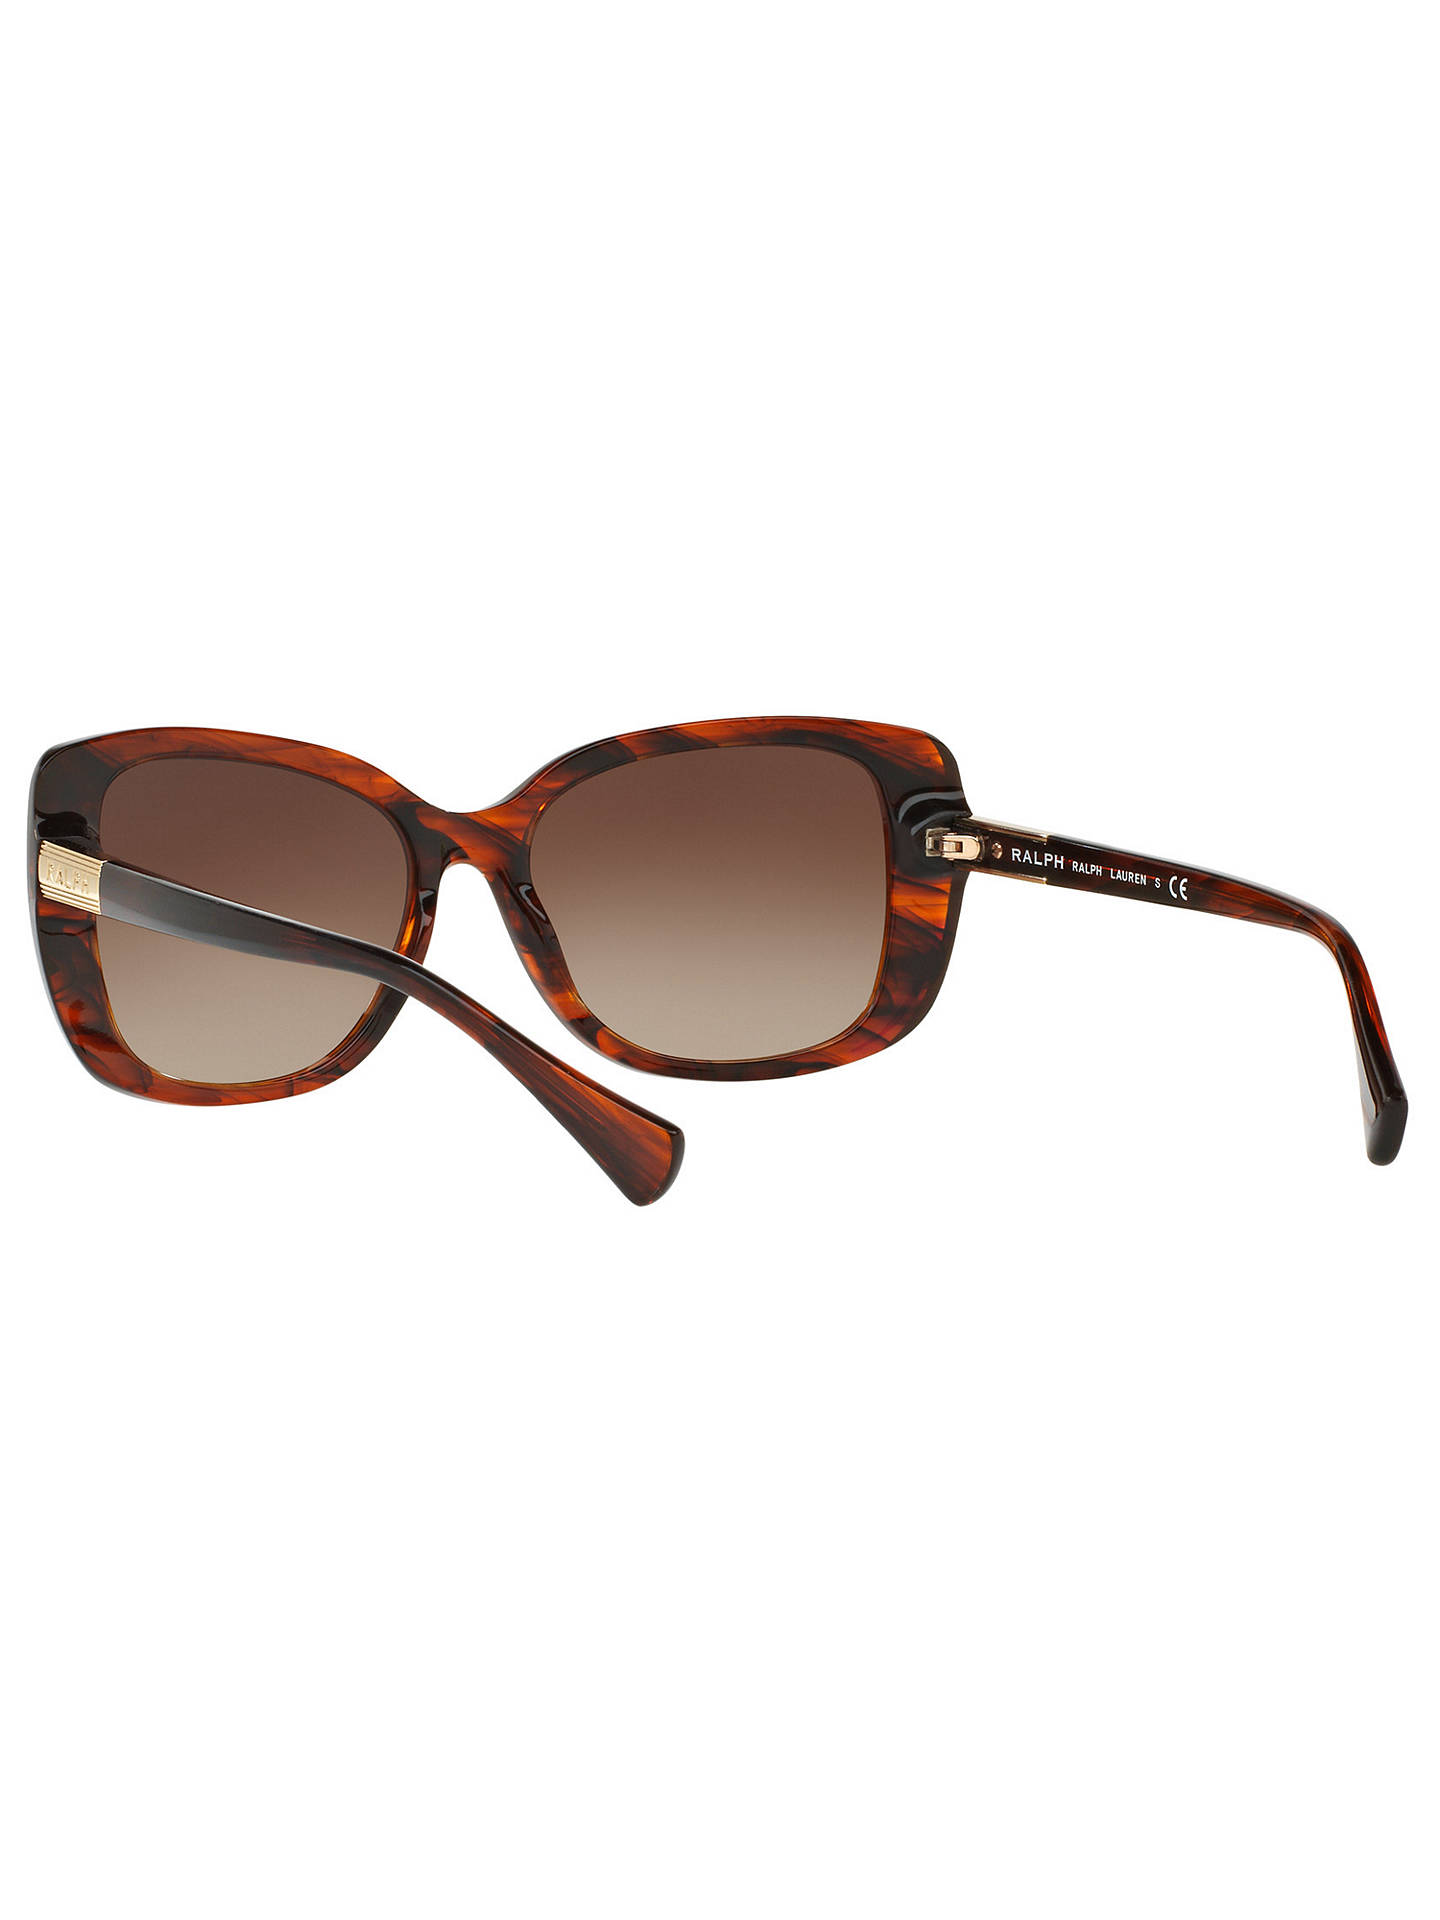 Buy Ralph RA5223 Square Sunglasses, Tortoise/Brown Gradient Online at johnlewis.com